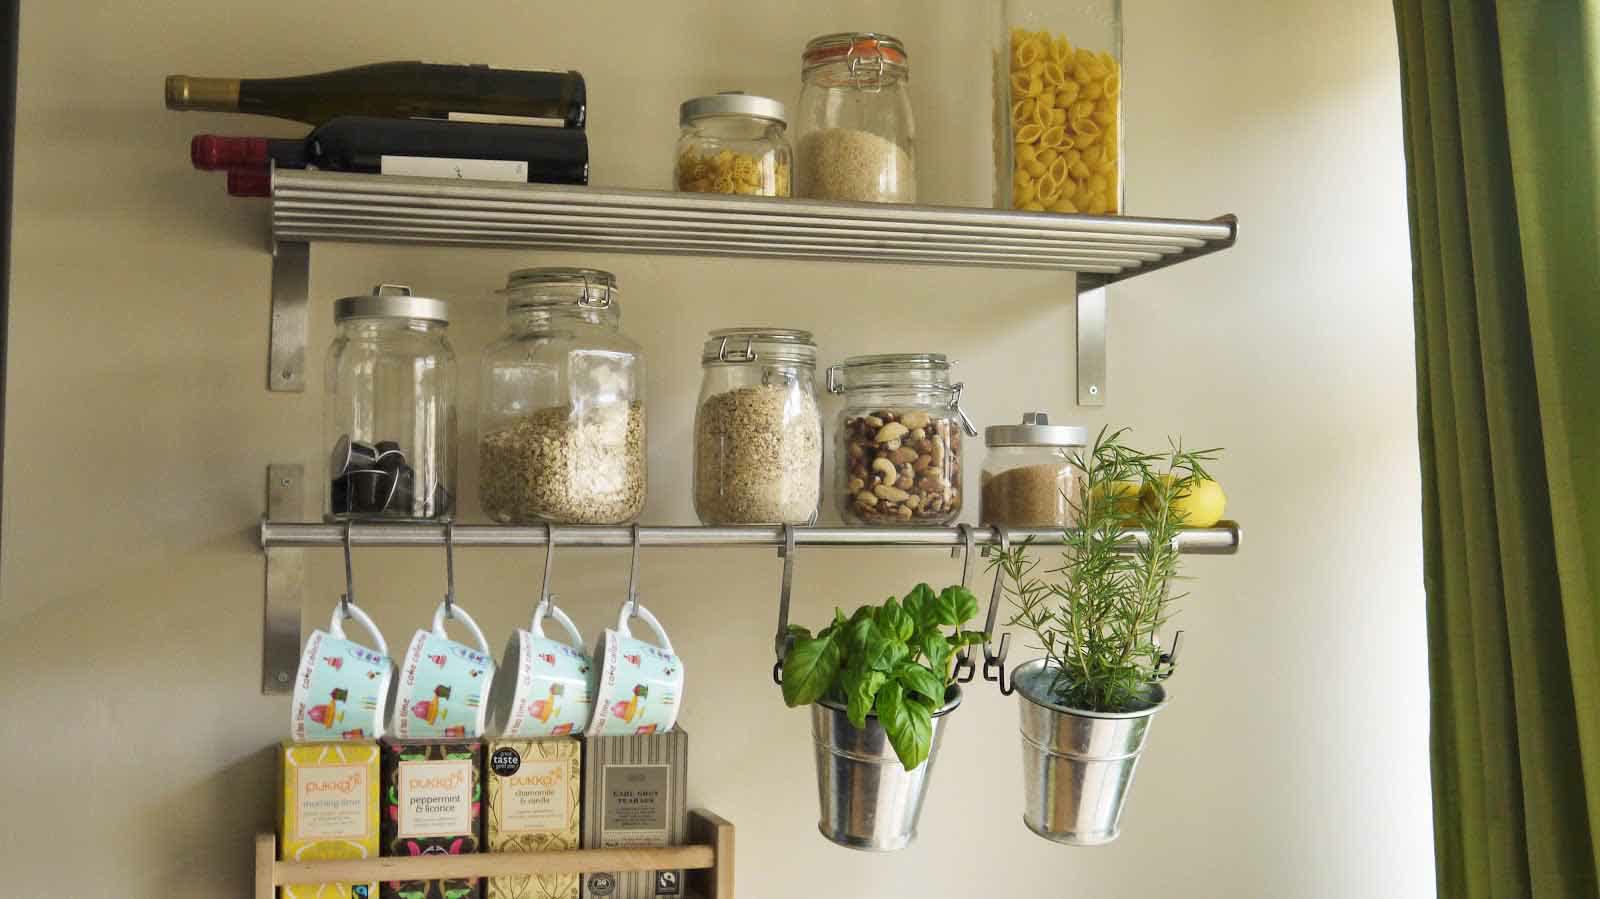 11 clever and easy kitchen organization ideas you 39 ll love for Kitchen organization ideas